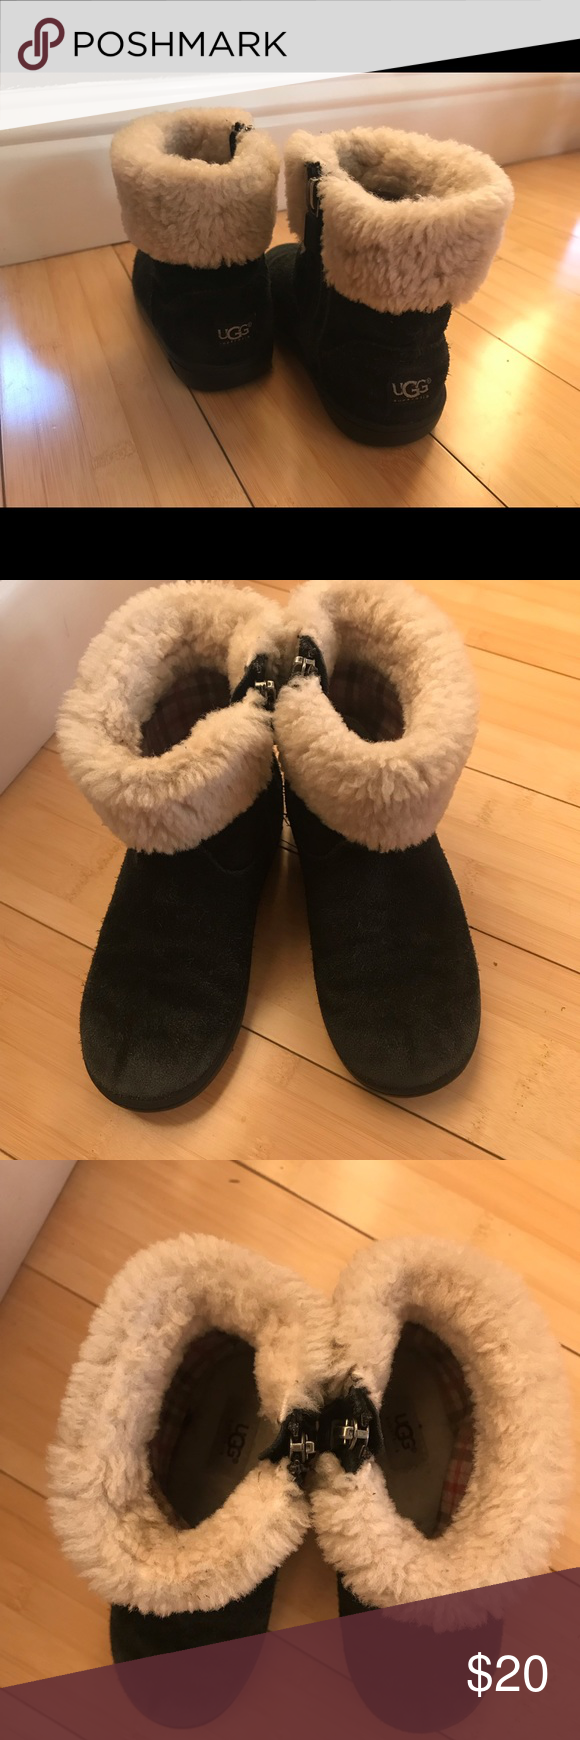 Ugg shoes size 10 Black suede Ugg boots size 10 for girls. UGG Shoes Boots #uggbootsoutfitblackgirl Ugg shoes size 10 Black suede Ugg boots size 10 for girls. UGG Shoes Boots #uggbootsoutfitblackgirl